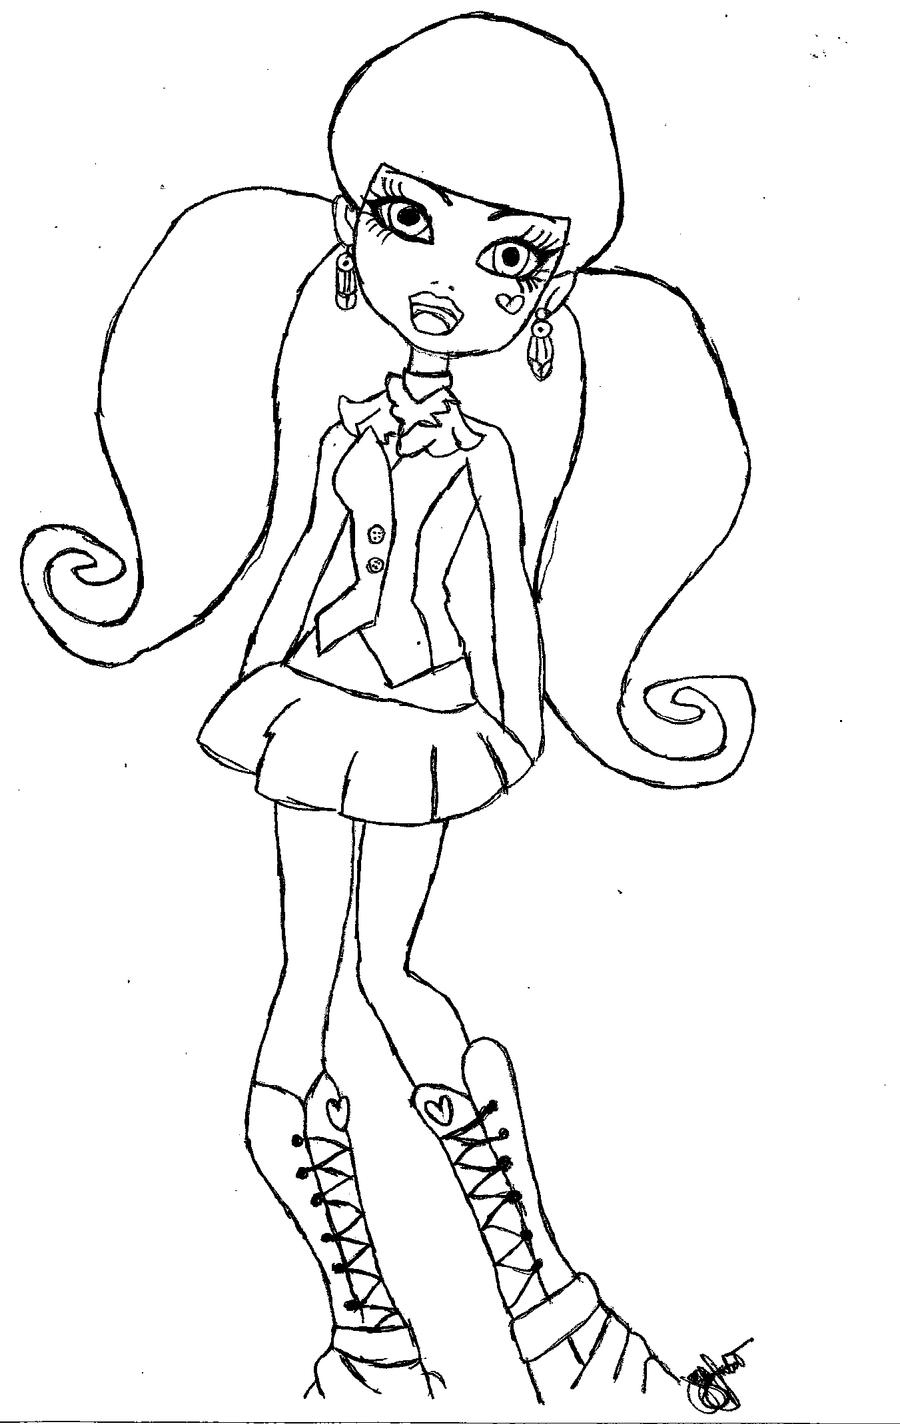 monster high drawing pictures monster high drawing at getdrawings free download drawing high monster pictures